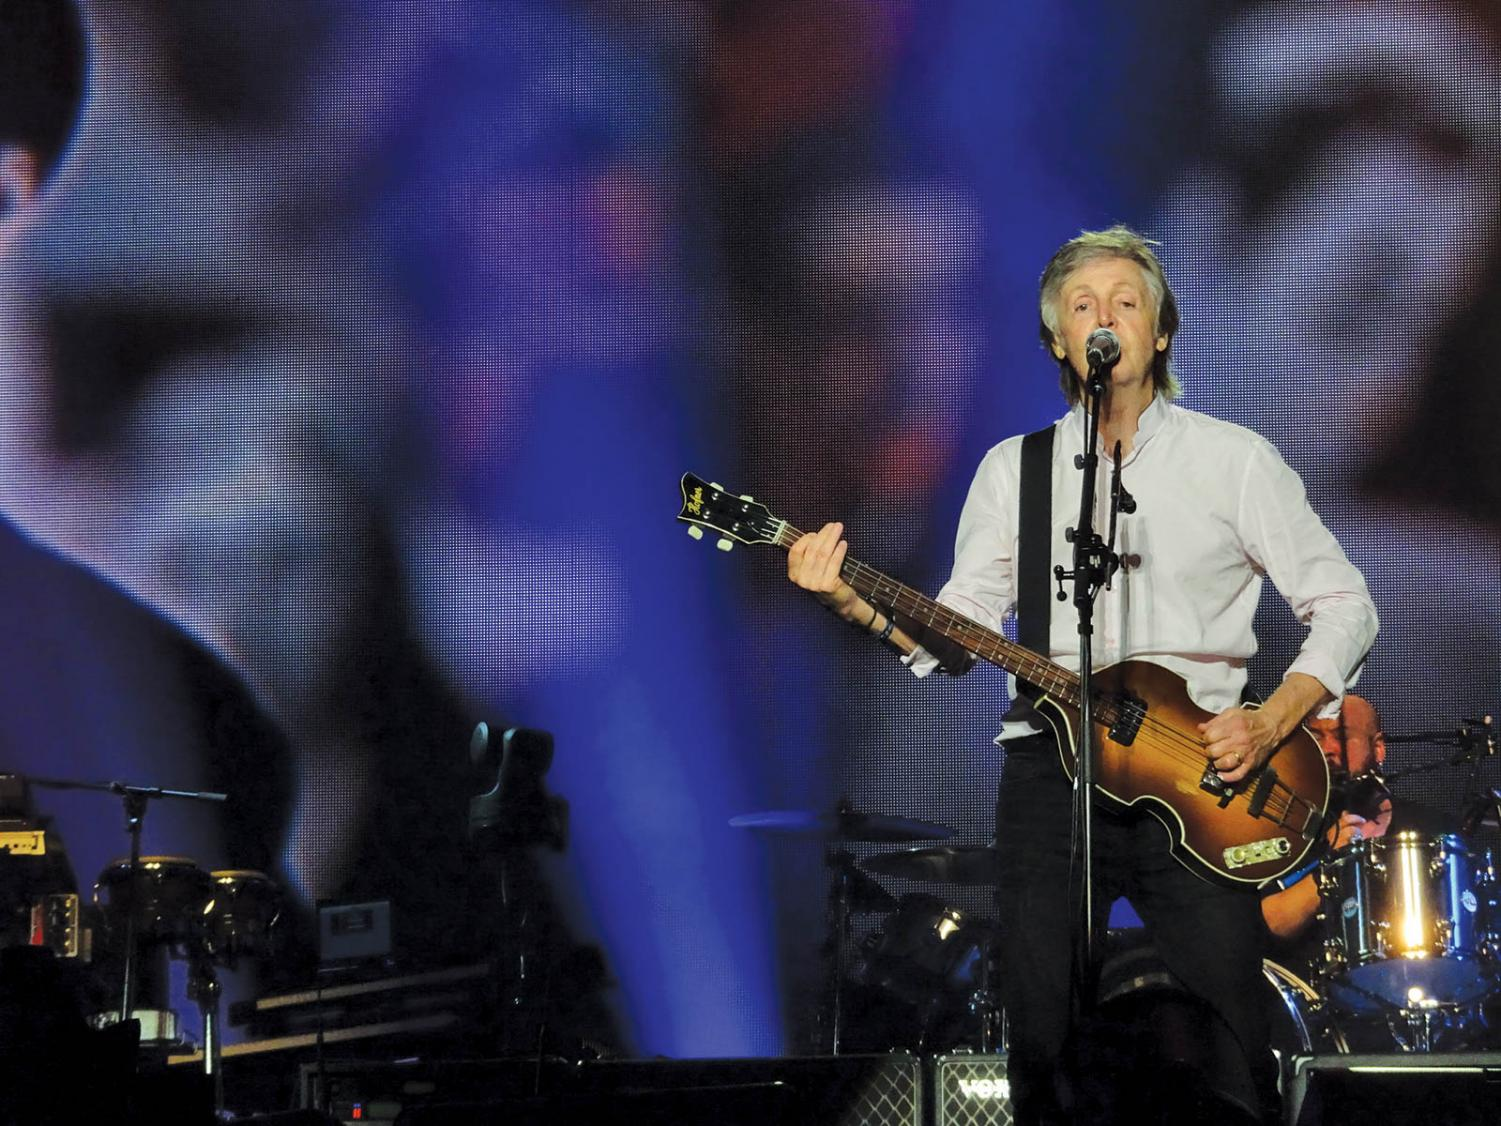 McCartney will perform at ACL Music Festival on Oct. 12.